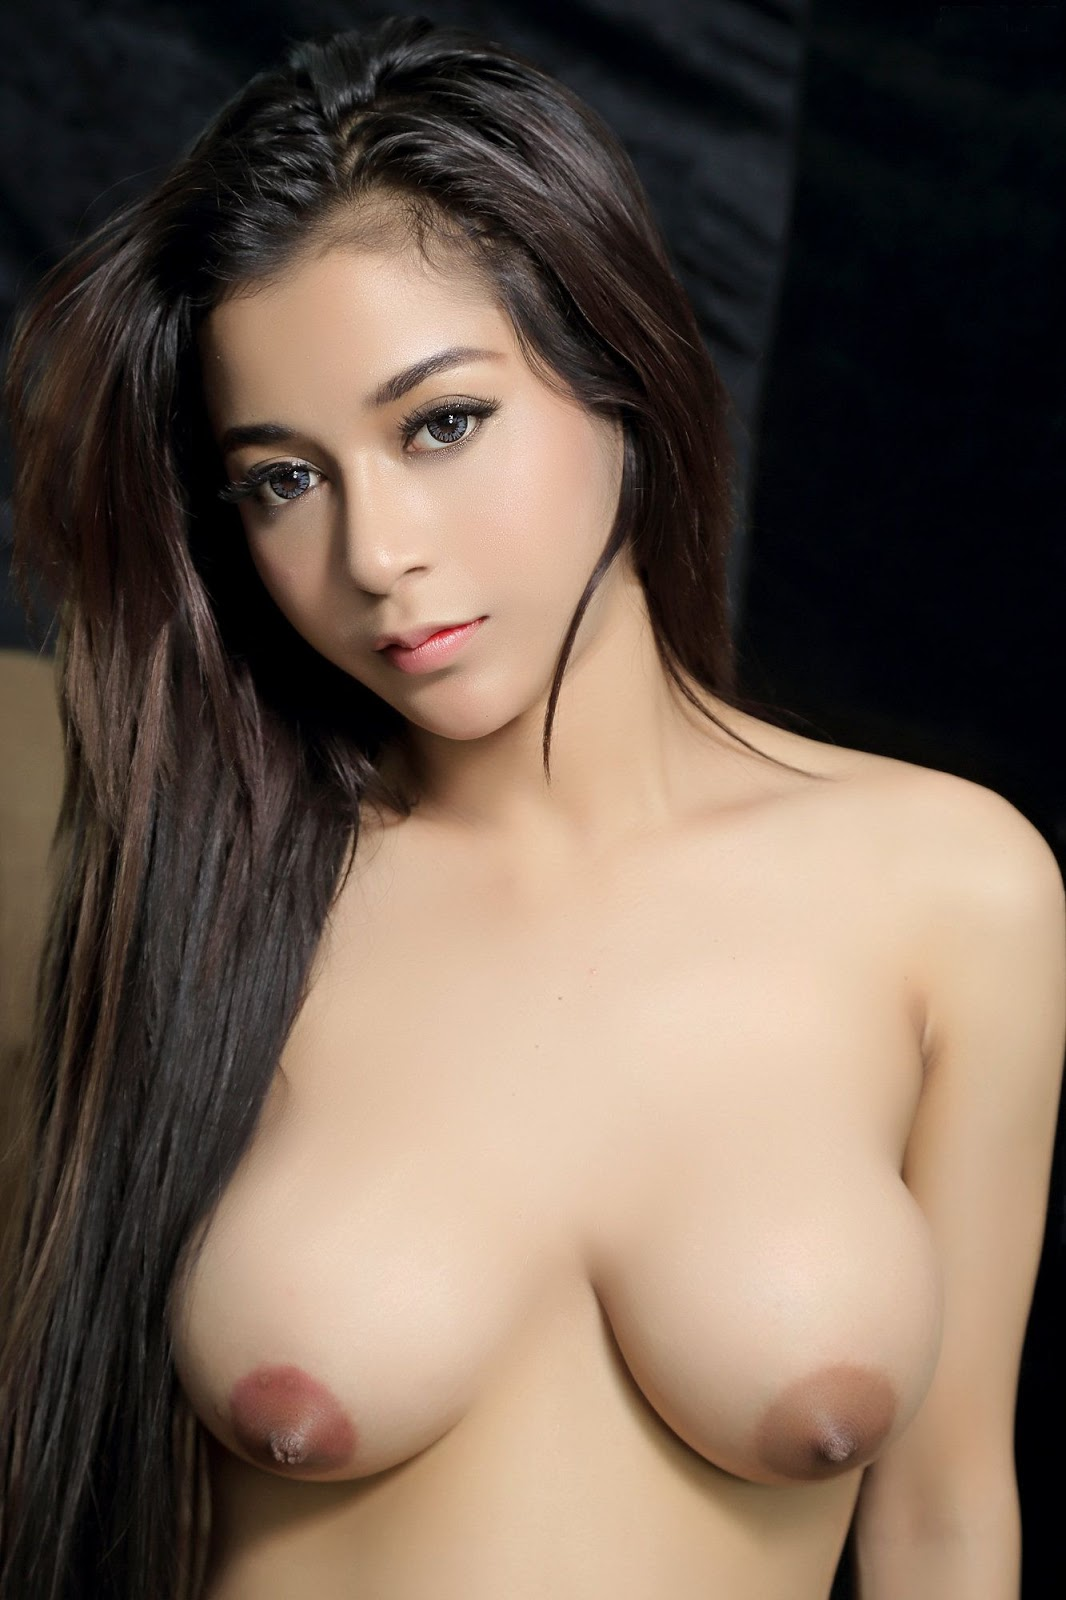 Pretty nude indonesian model